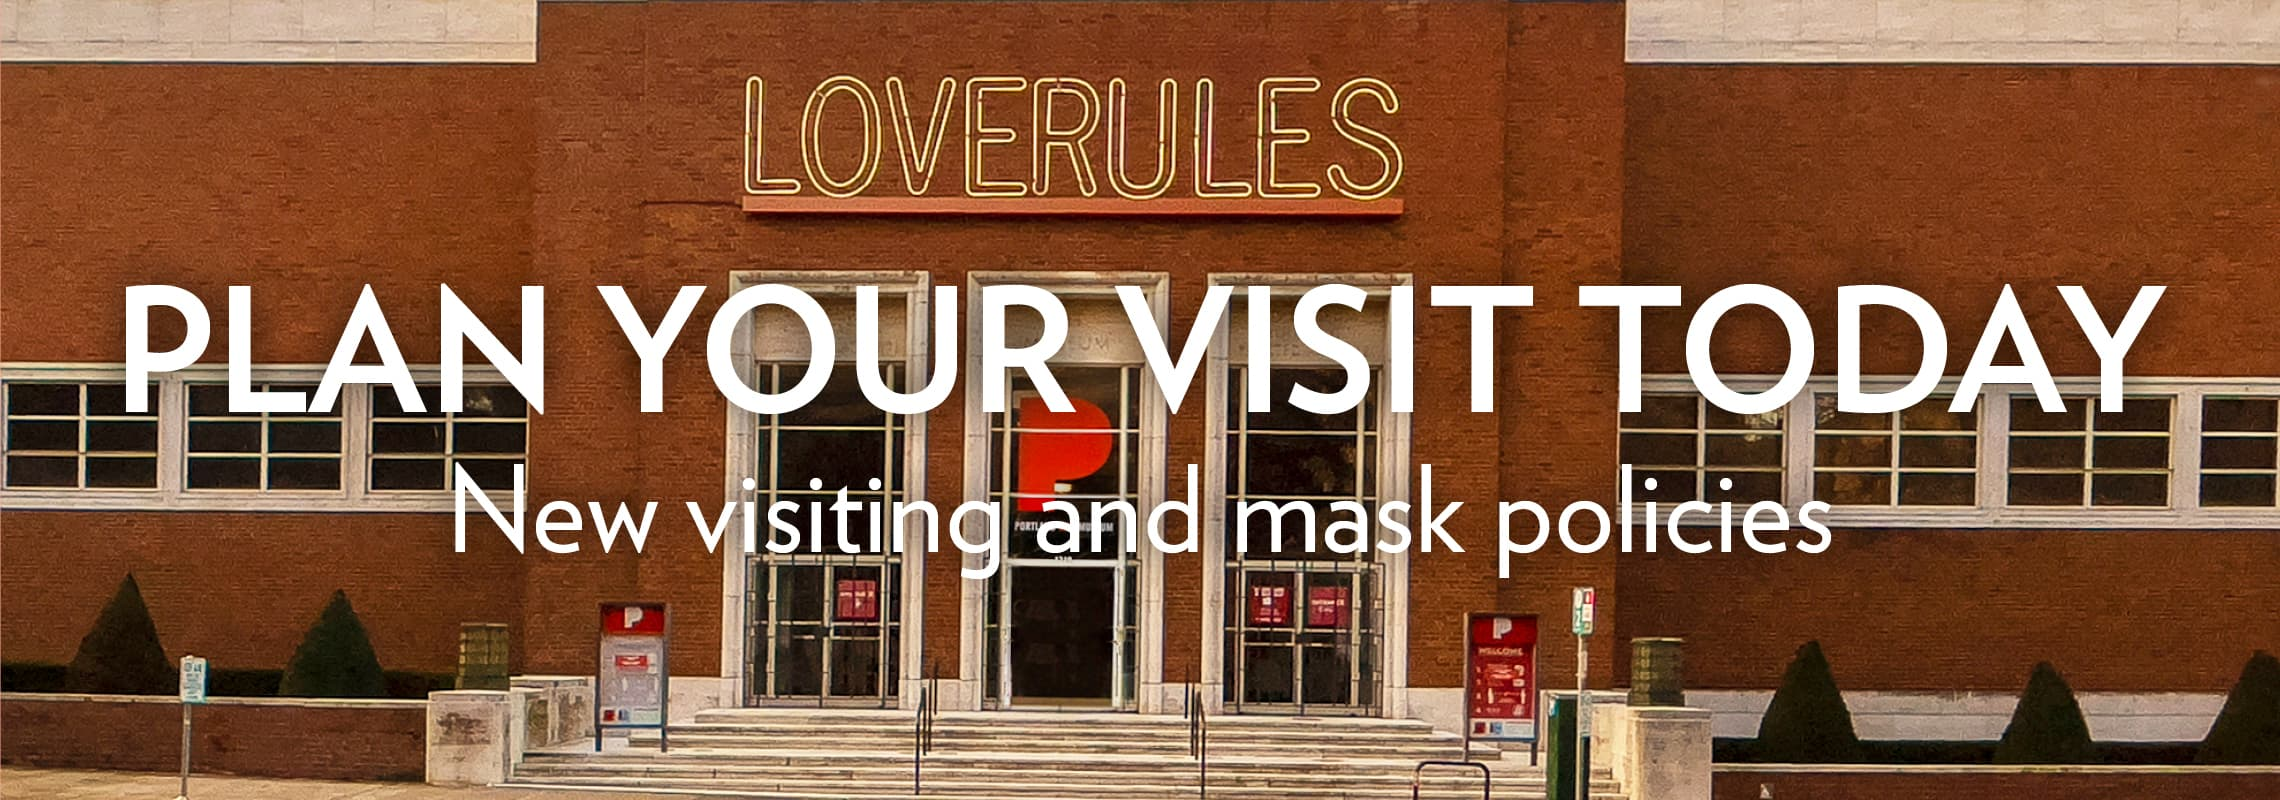 Plan your visit today: new visiting and mask policies